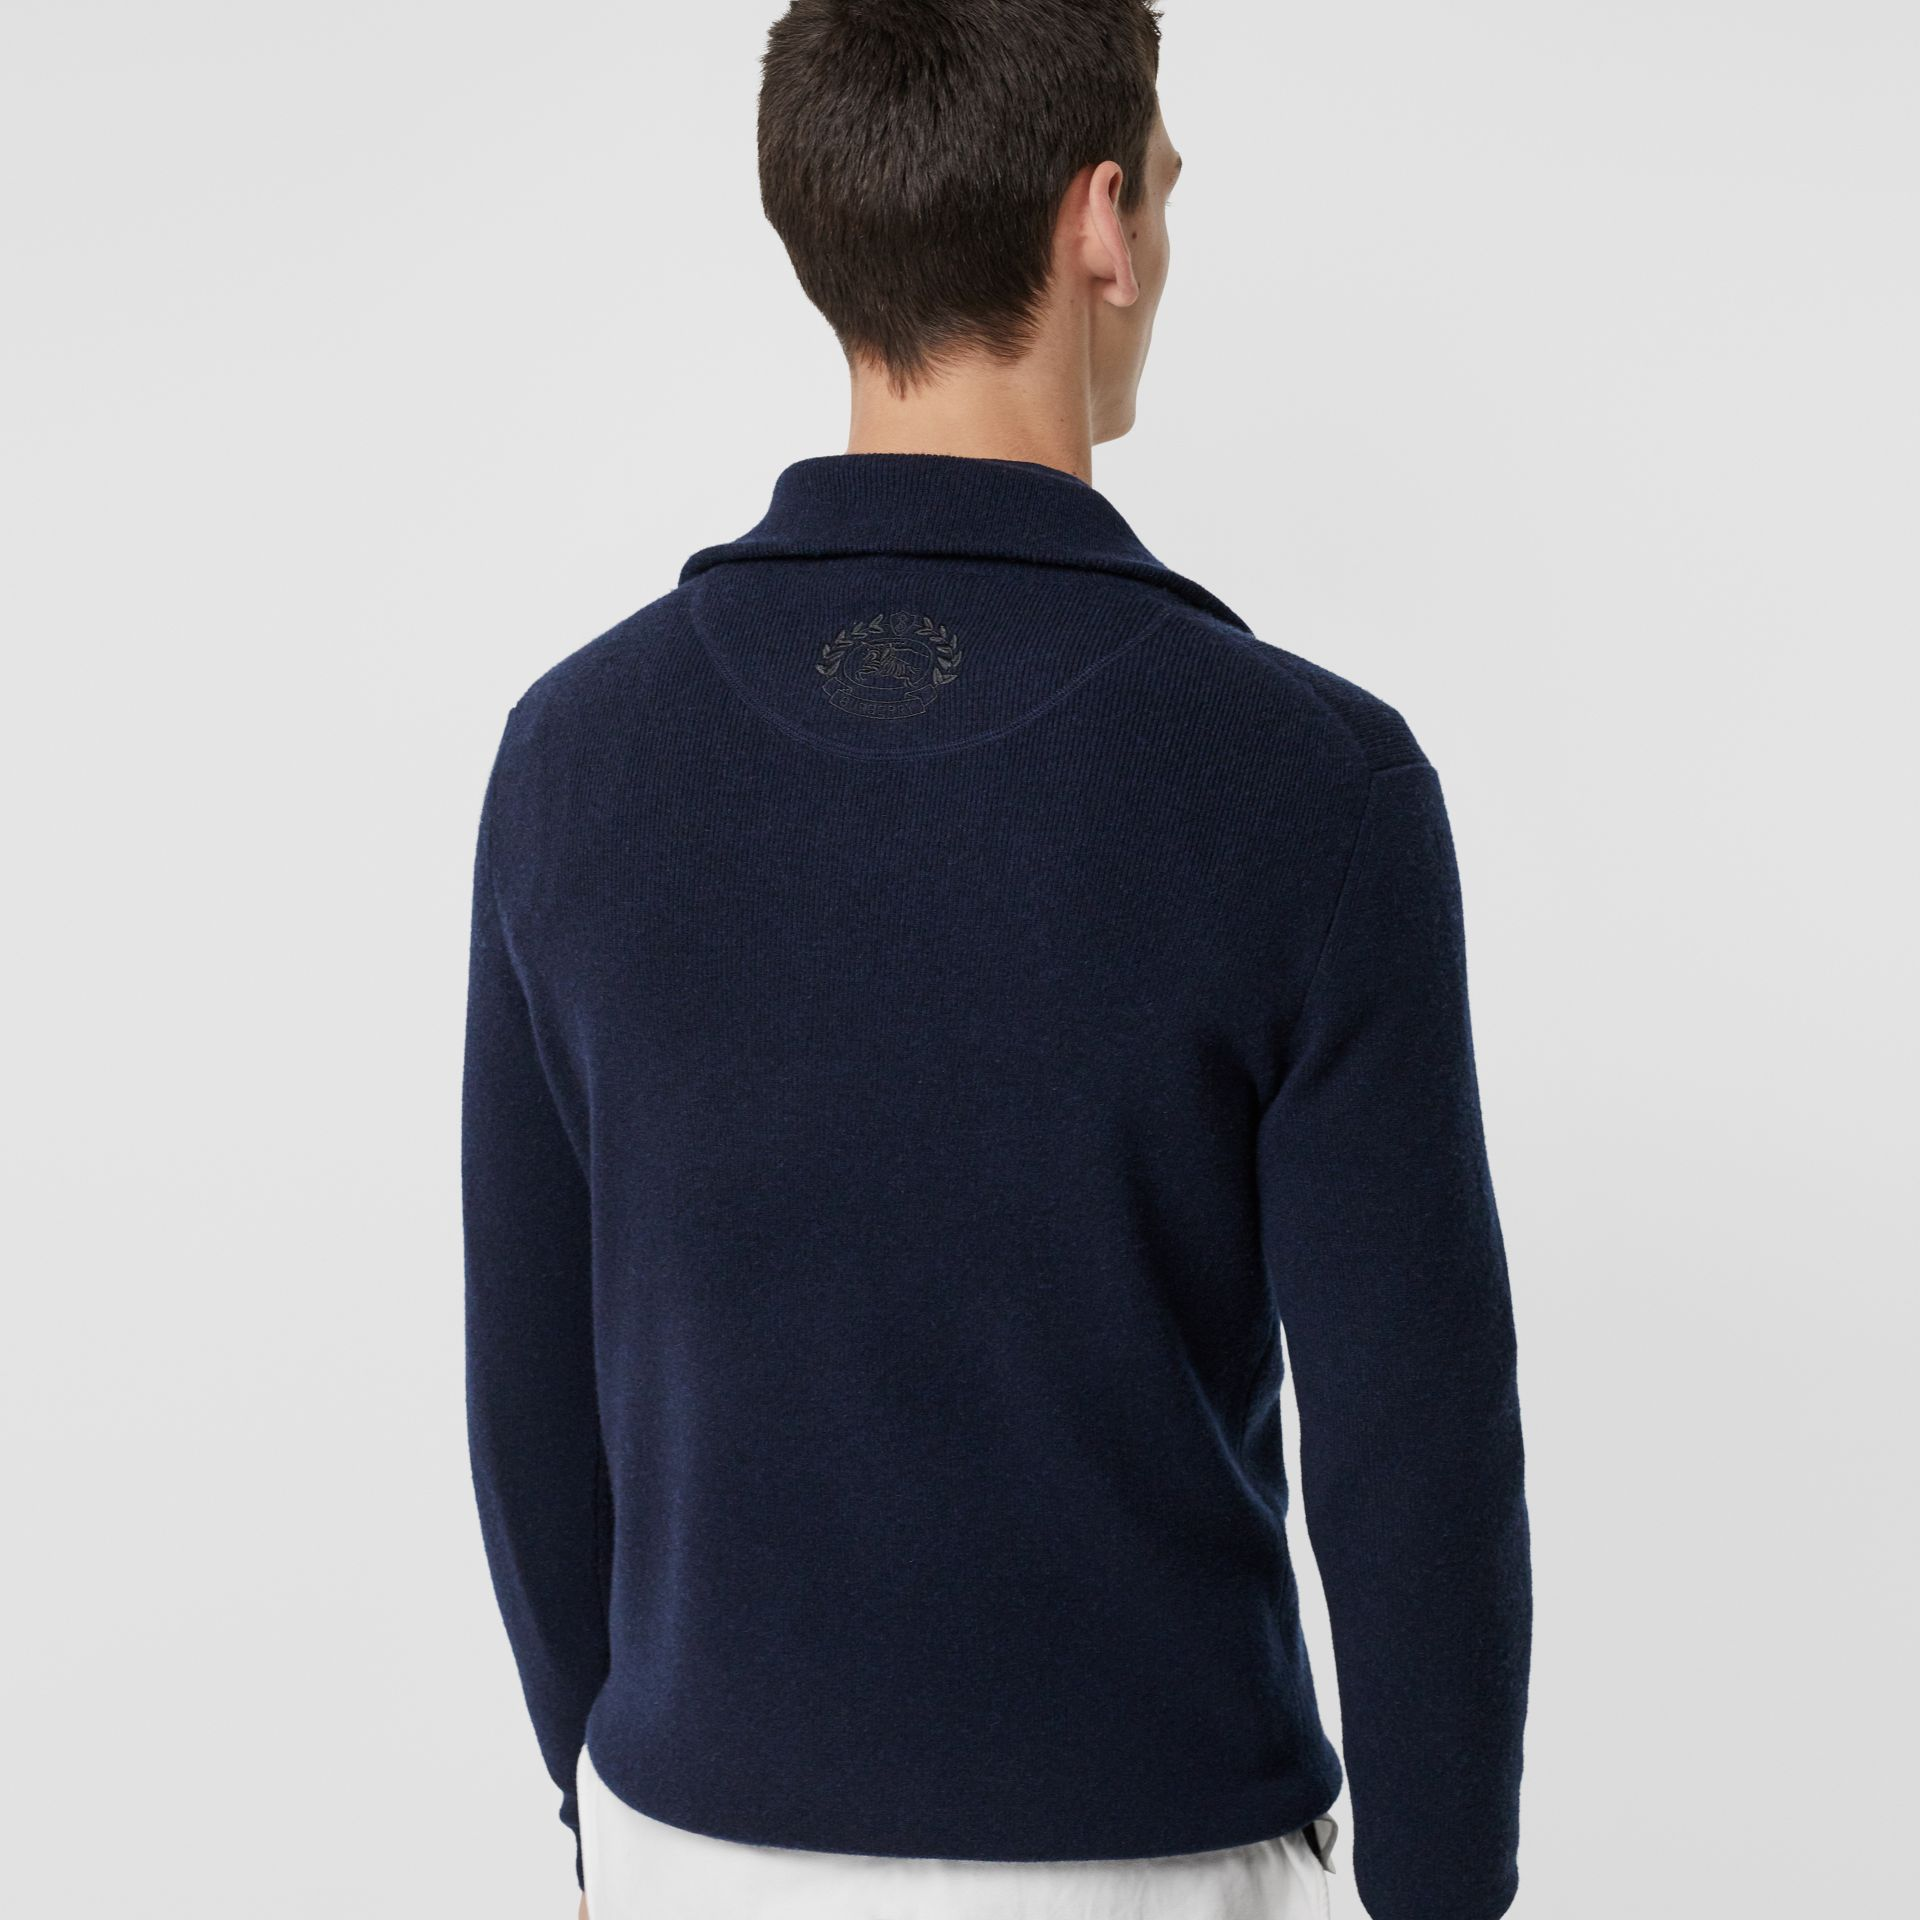 Rib Knit Cashmere Half-zip Sweater in Navy - Men | Burberry - gallery image 2